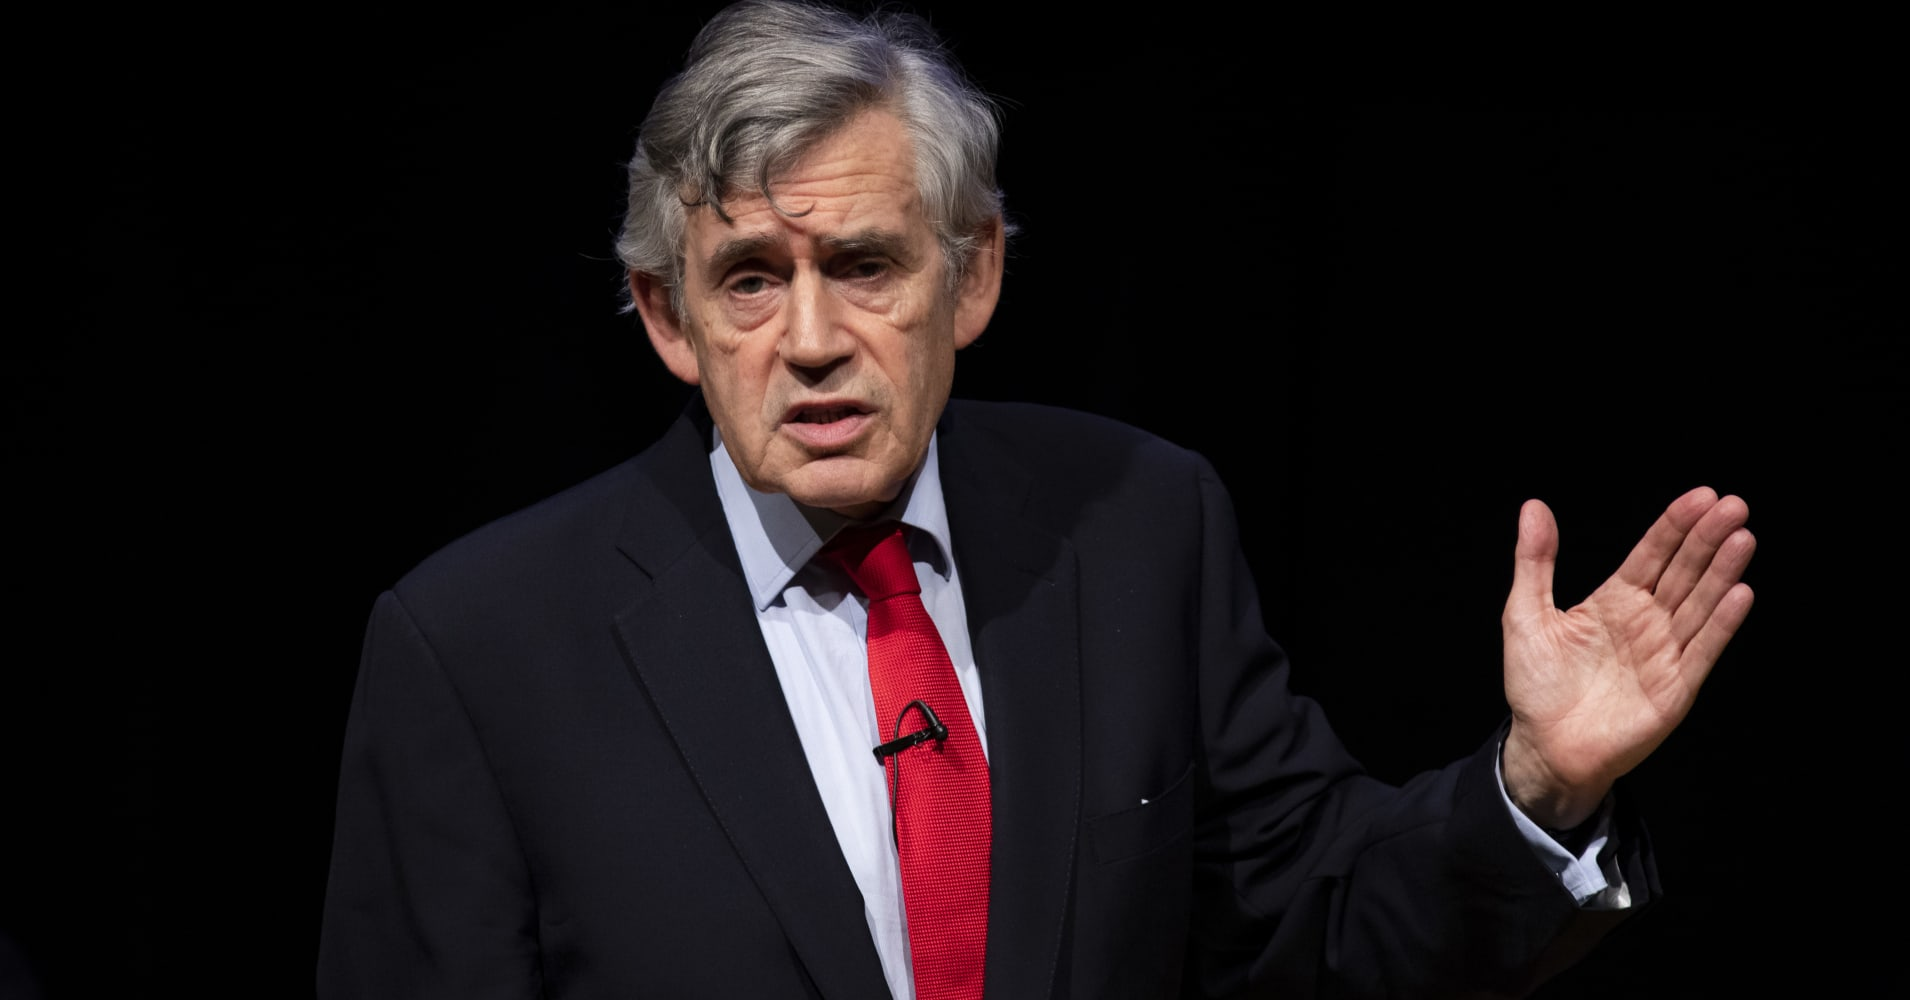 Former UK Prime Minister Gordon Brown on Brexit vote, Theresa May